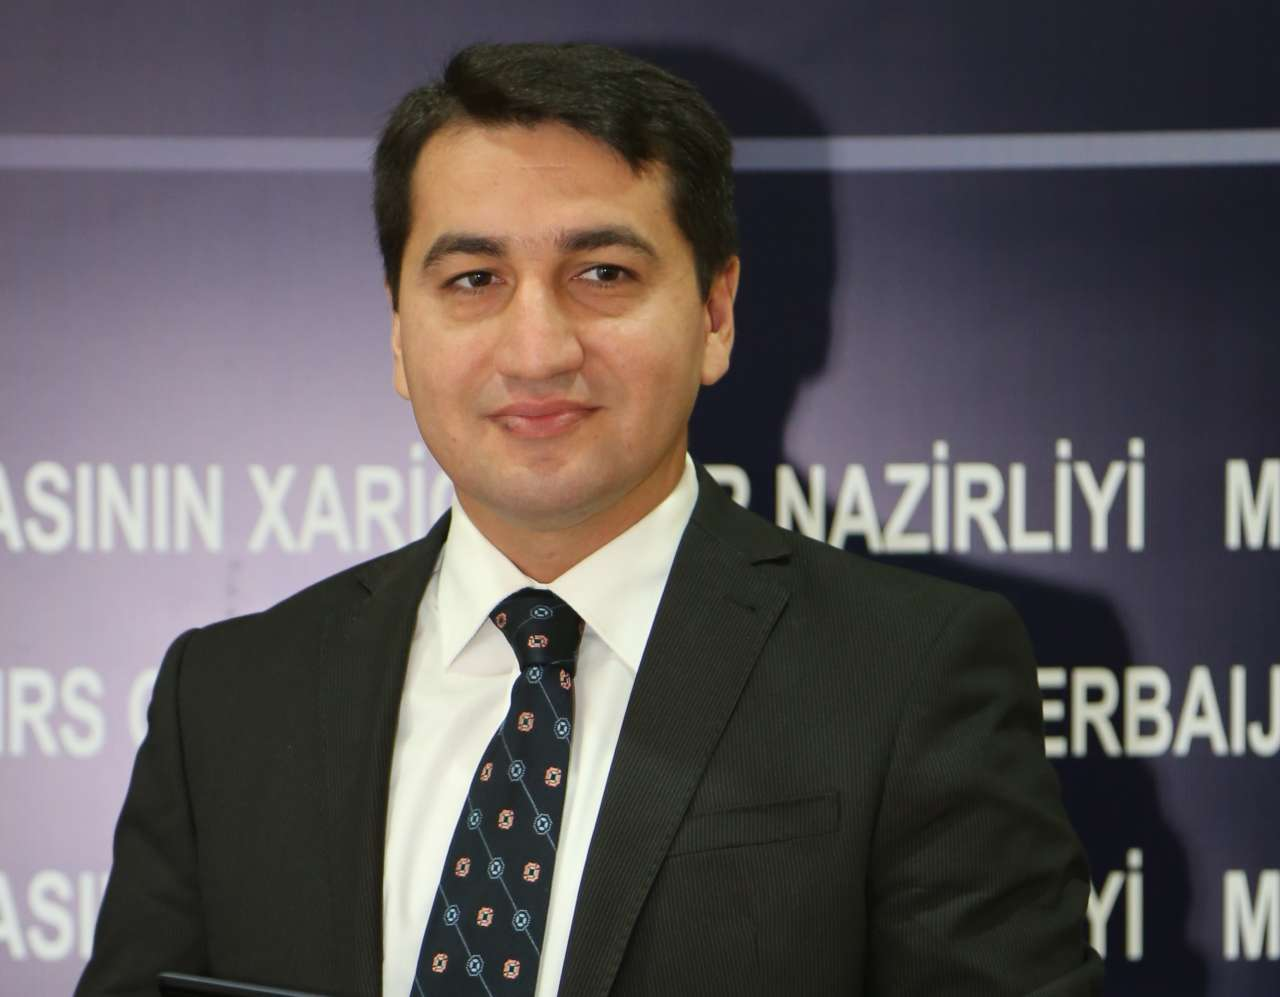 Everyone must know that Azerbaijan's patience has its limits - Foreign Ministry